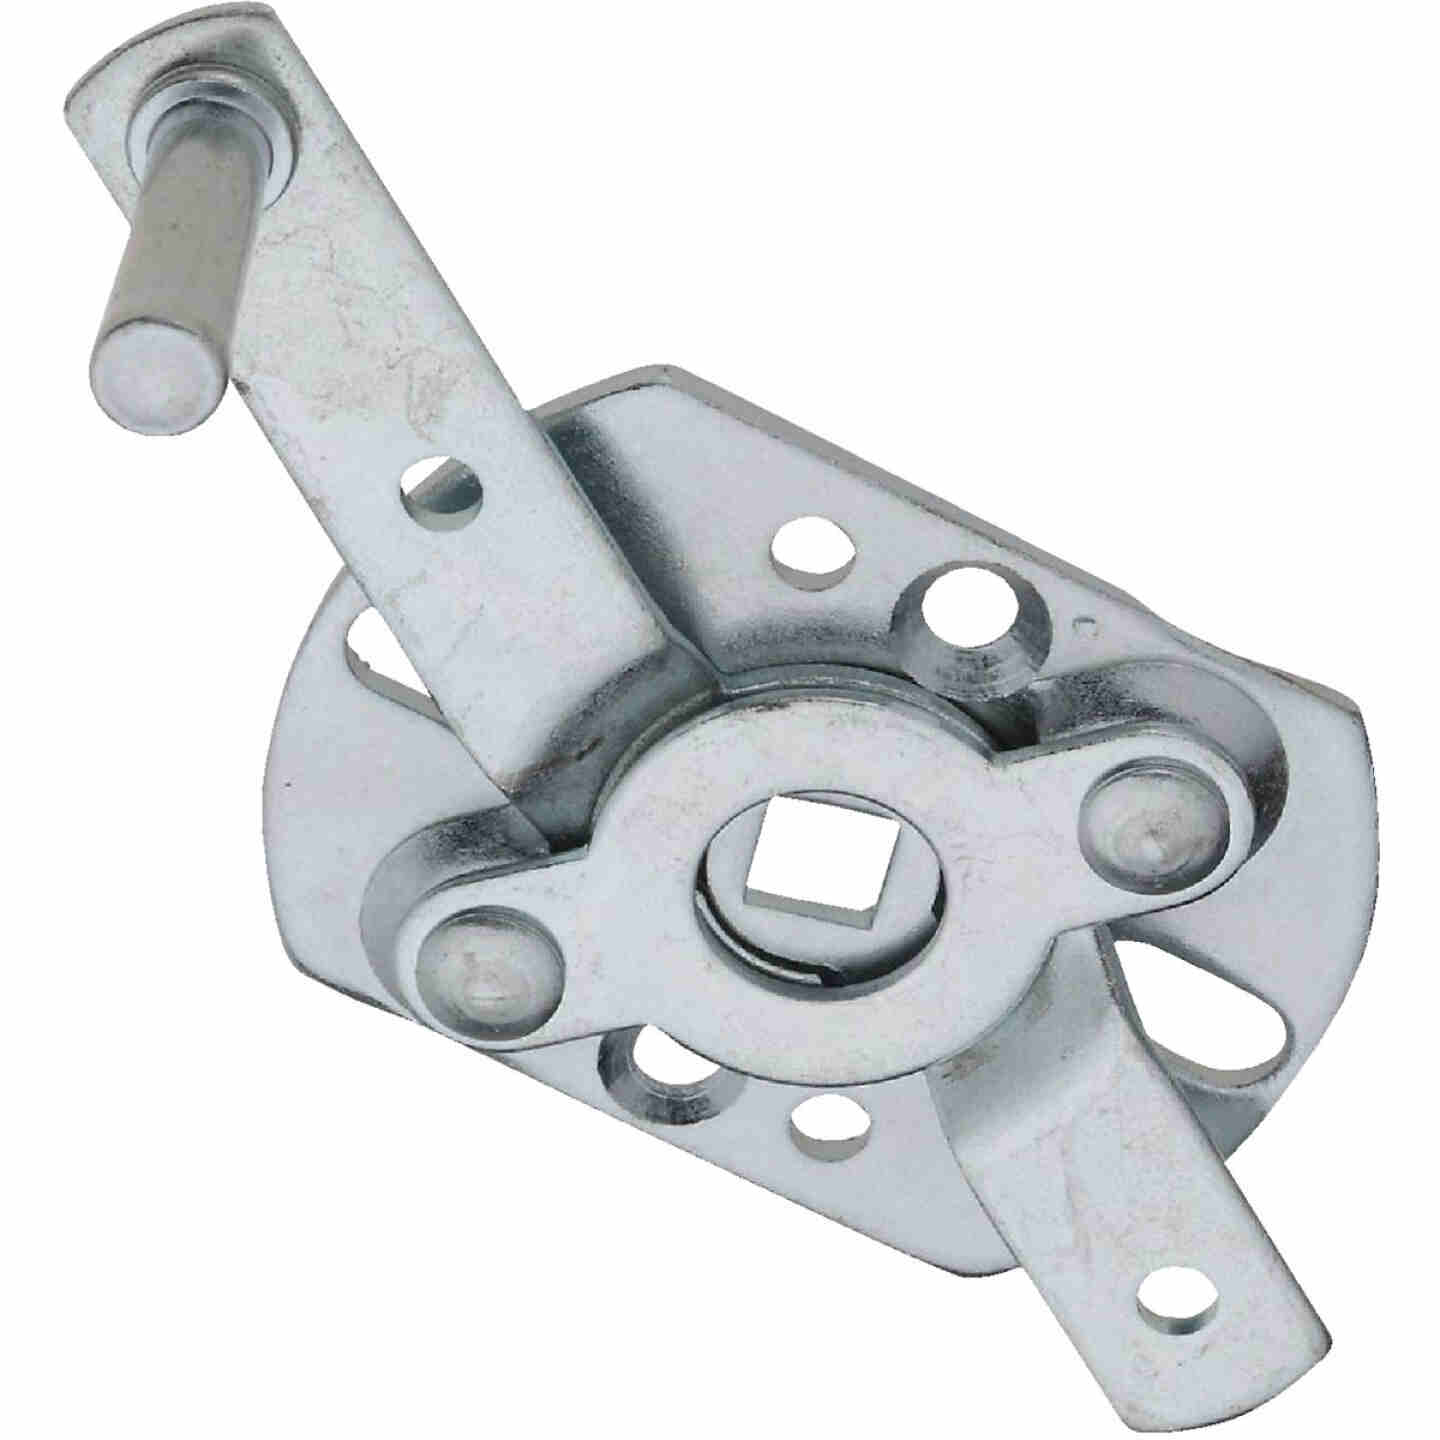 Prime-Line 5/16 In. Sq. Shaft Galvanized Steel Swivel Latch Image 1